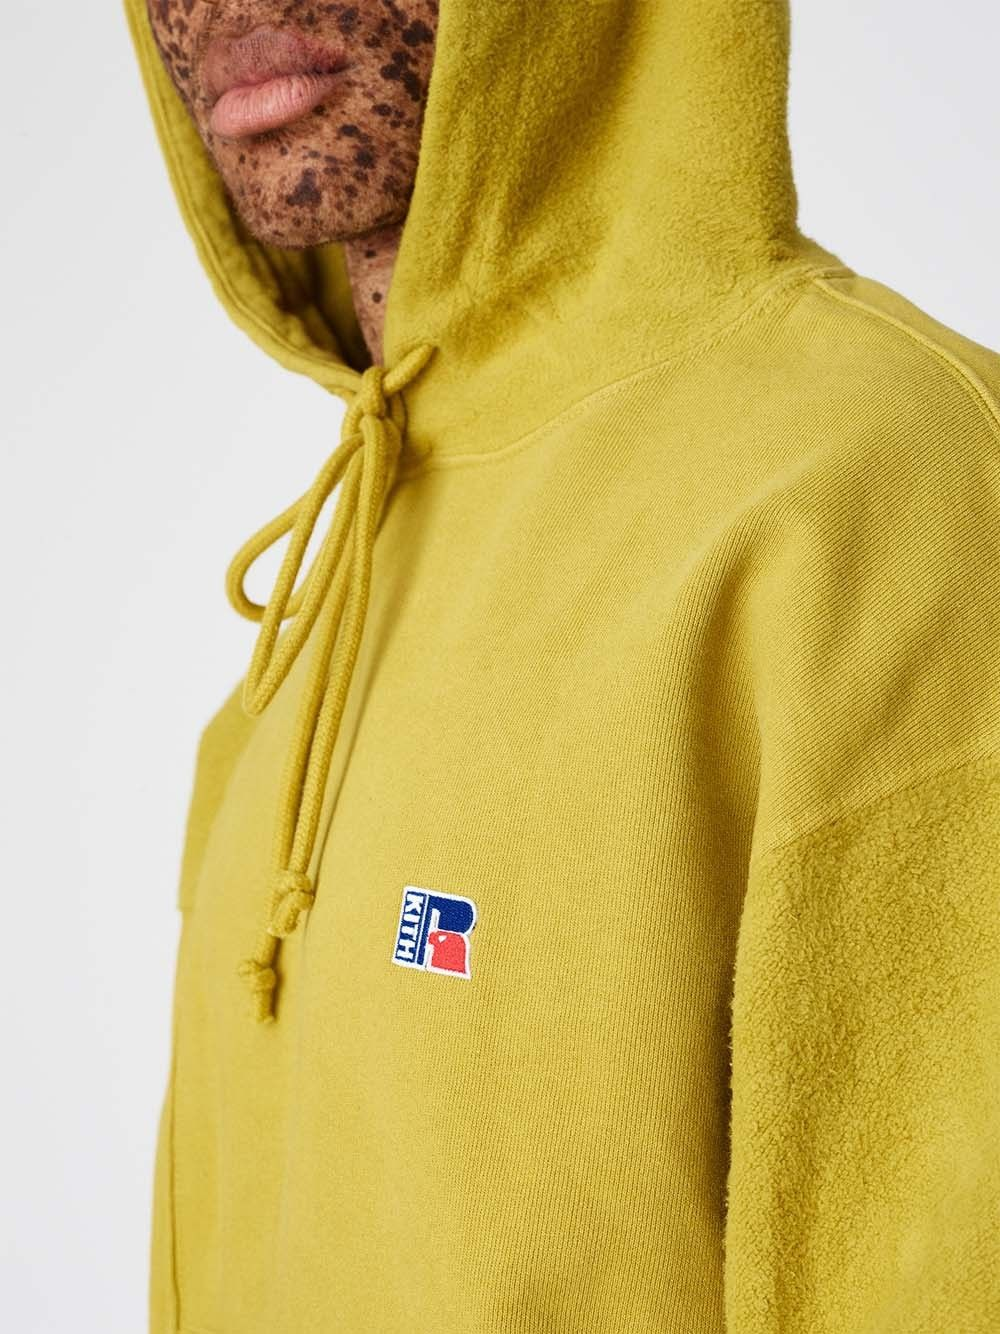 UPDATE: A Full Look at the KITH x Russell Collaboration